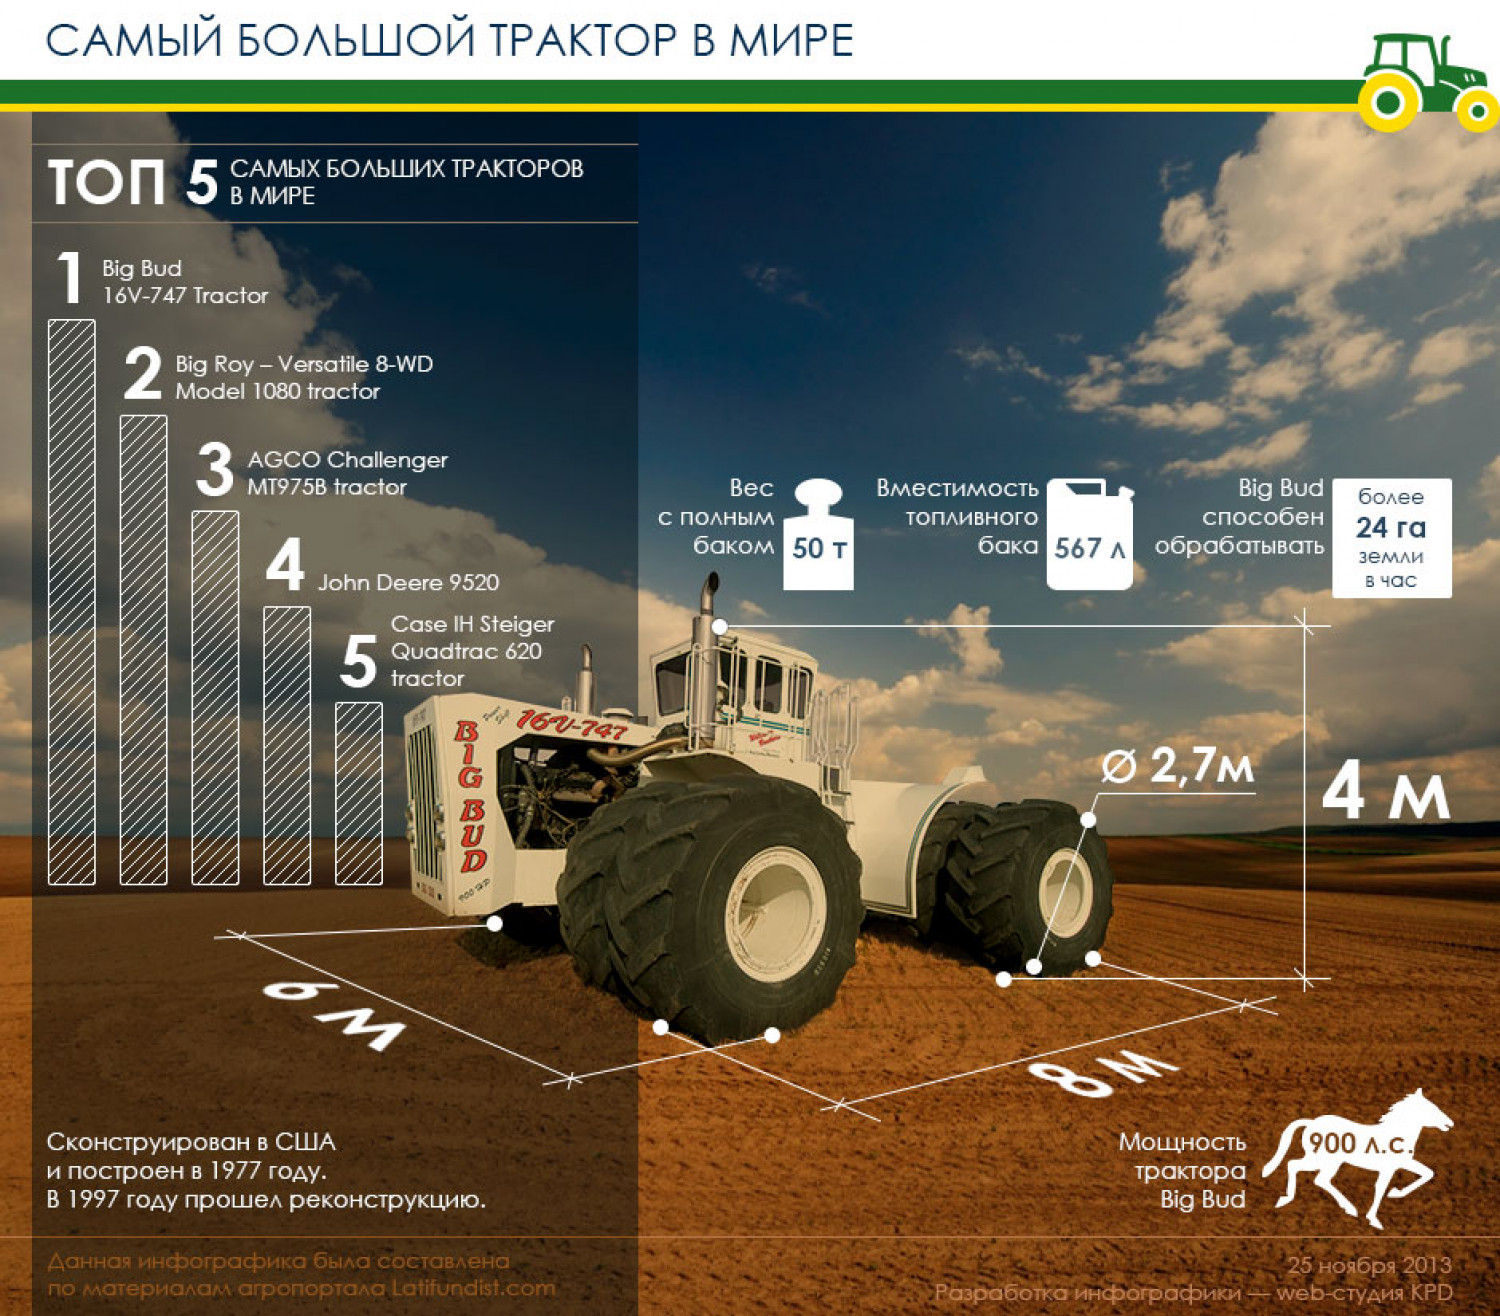 The Biggest Tractor in the World Infographic